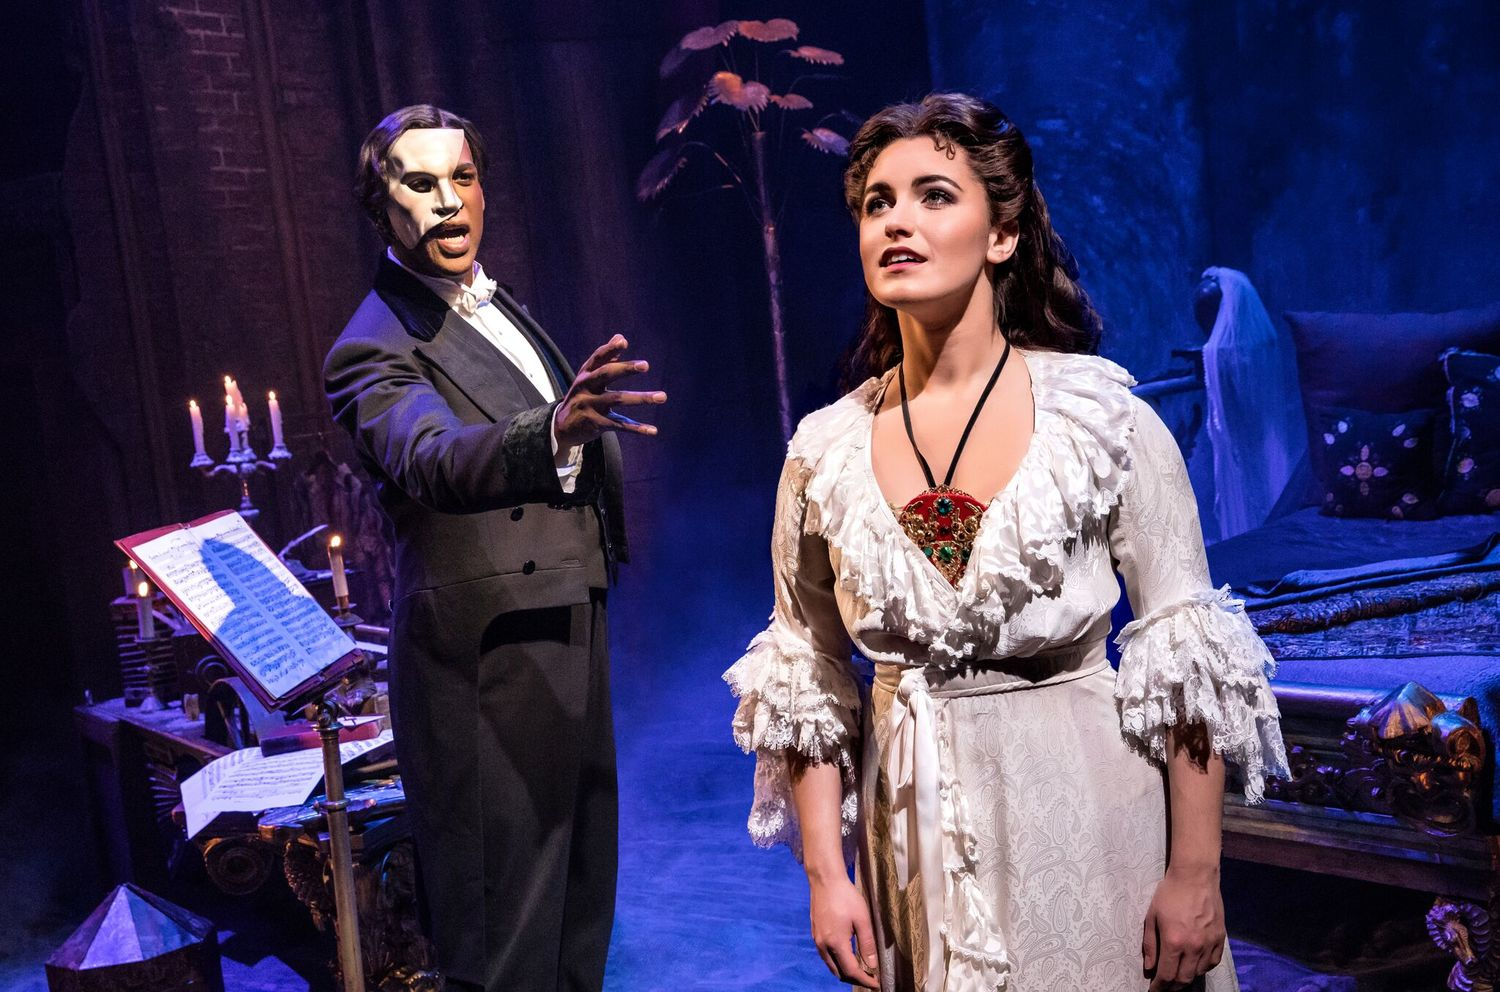 BWW Review: Andrew Lloyd Webber's Score Shines Through New Staging of PHANTOM OF THE OPERA at Mirvish